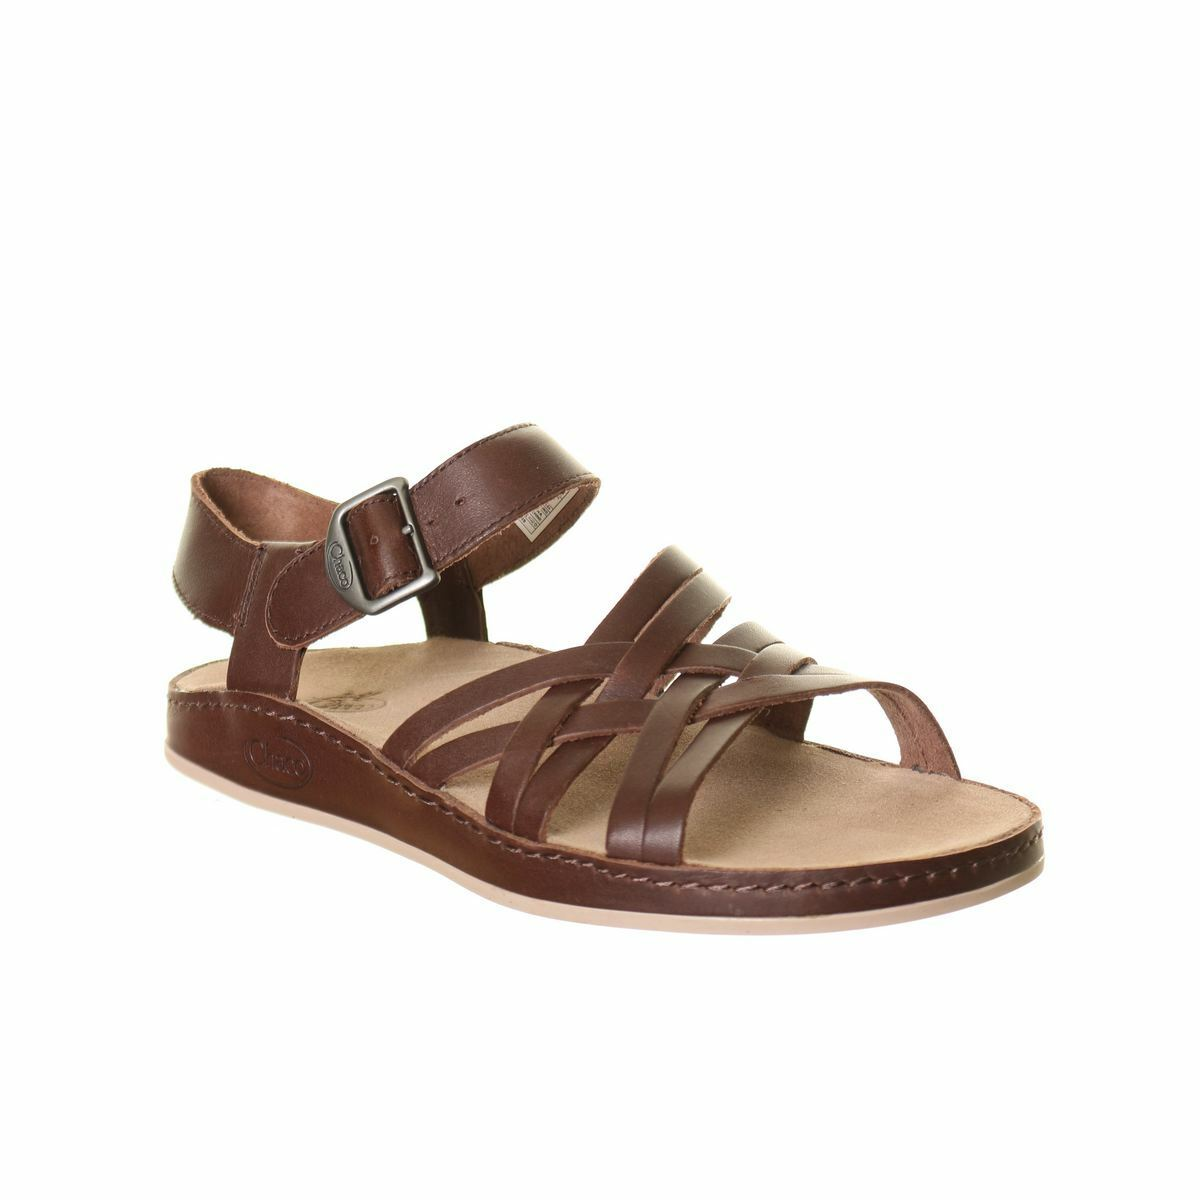 CHACO NEW Women's Fallon Ankle Strap Comfort Shoes TEDO